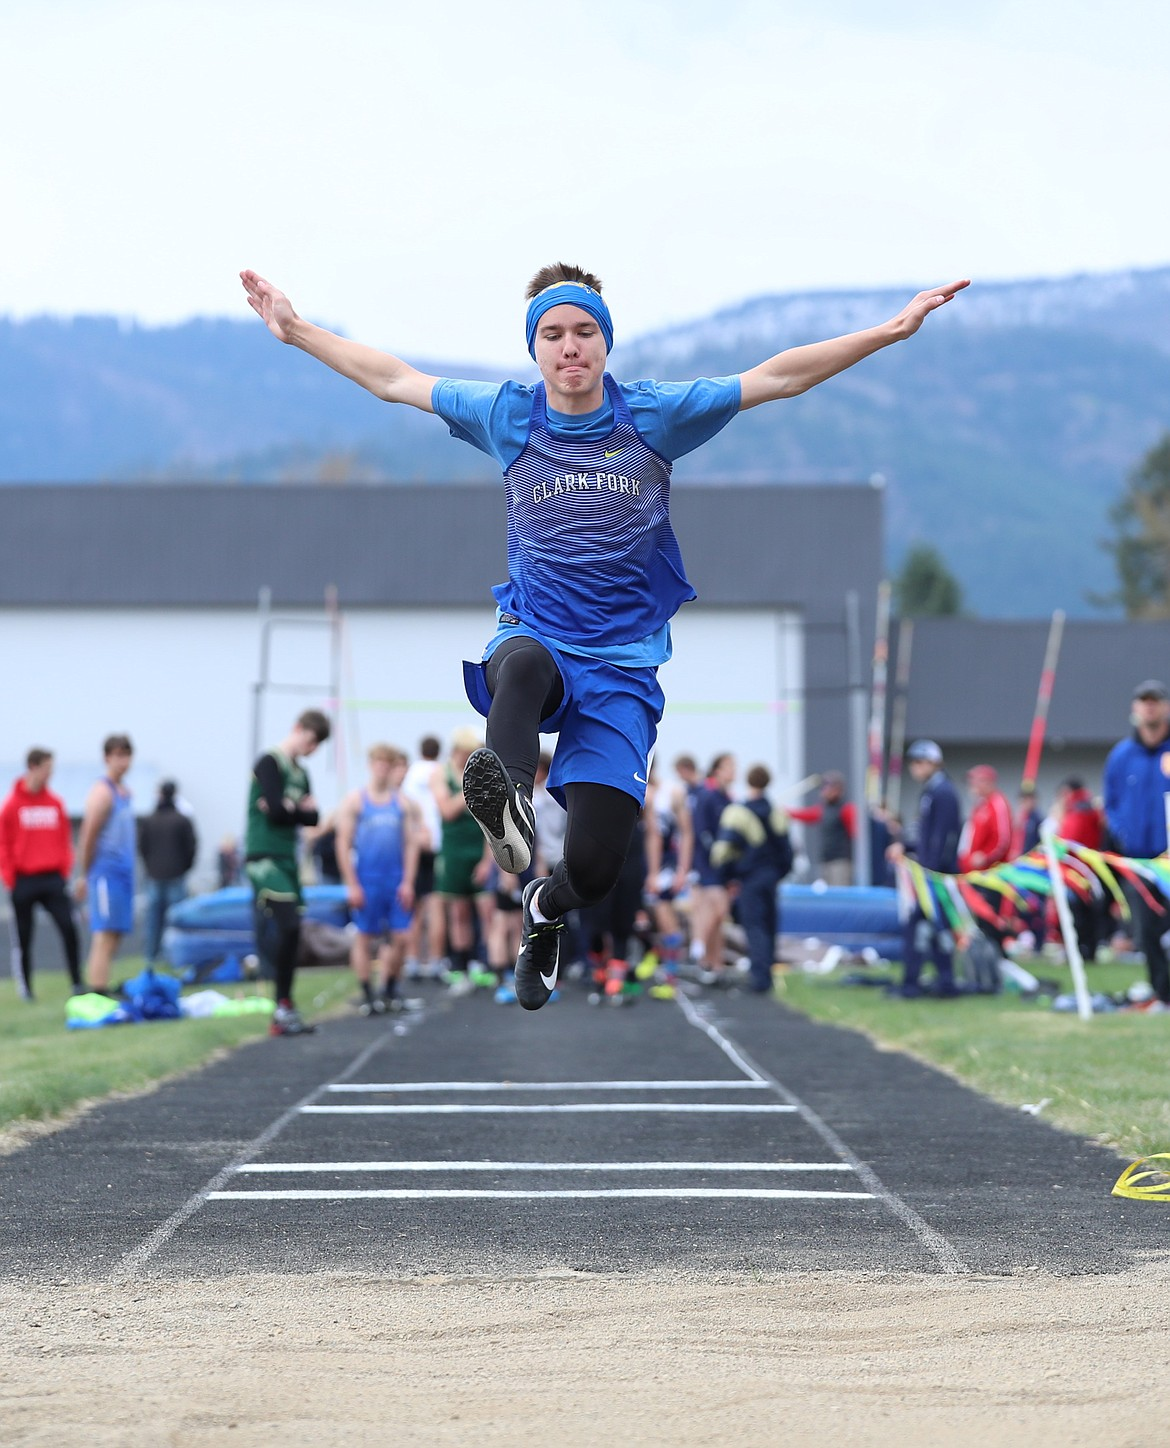 Carson Yetter takes off in the long jump on Saturday.